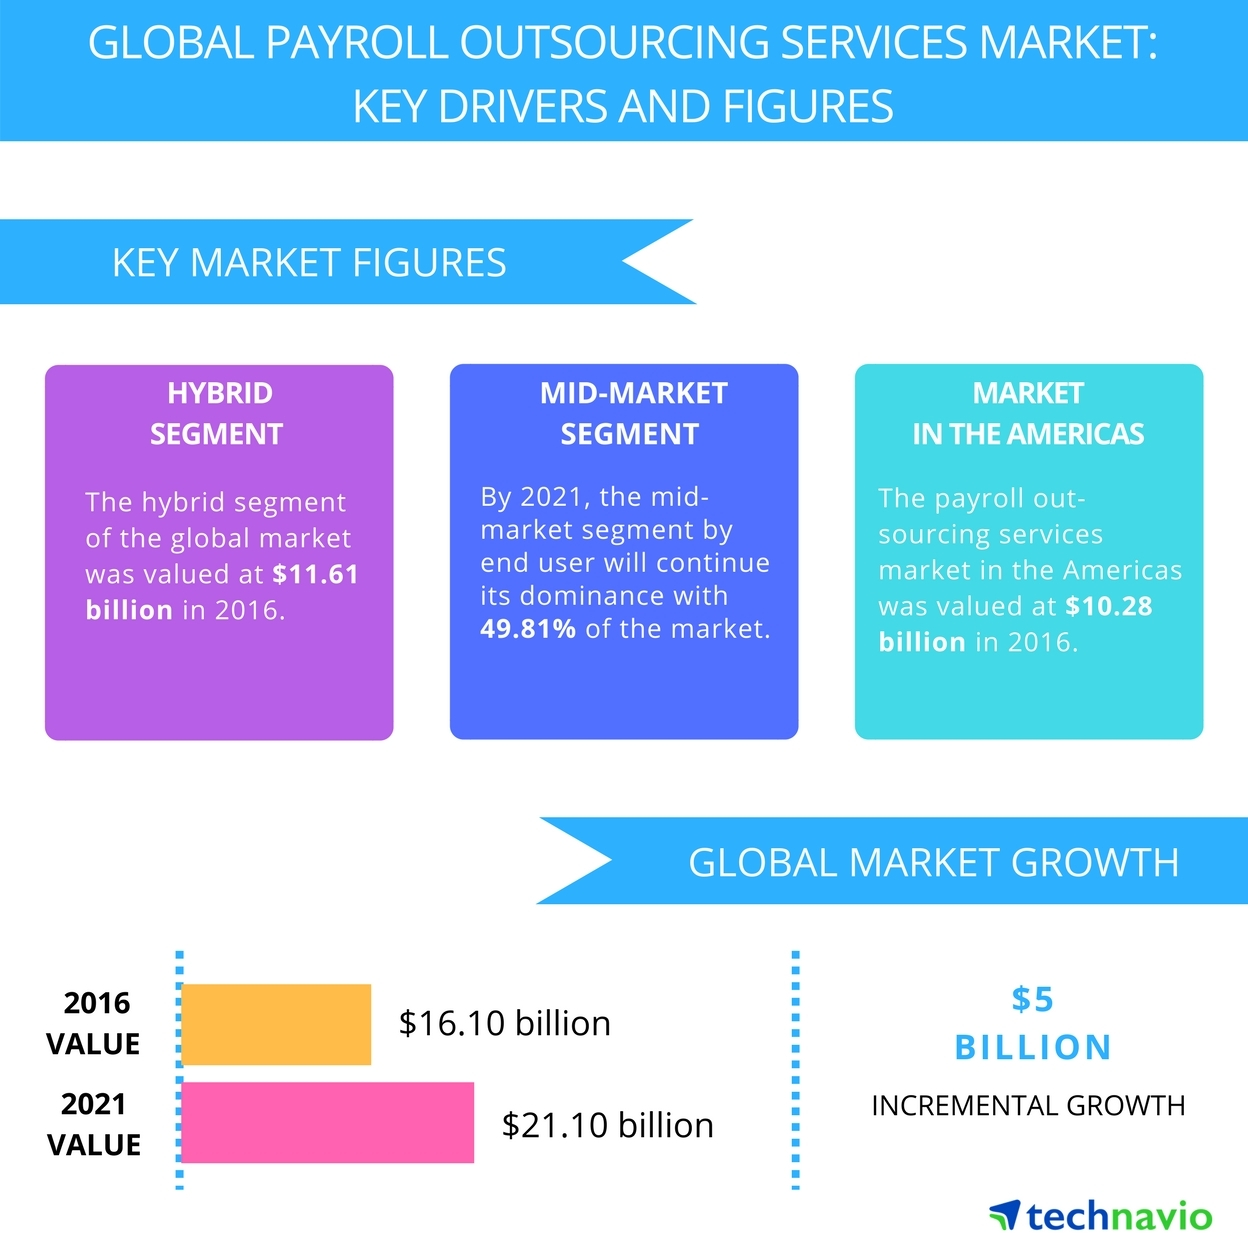 Technavio has published a new report on the global payroll outsourcing services market from 2017-2021. (Graphic: Business Wire)